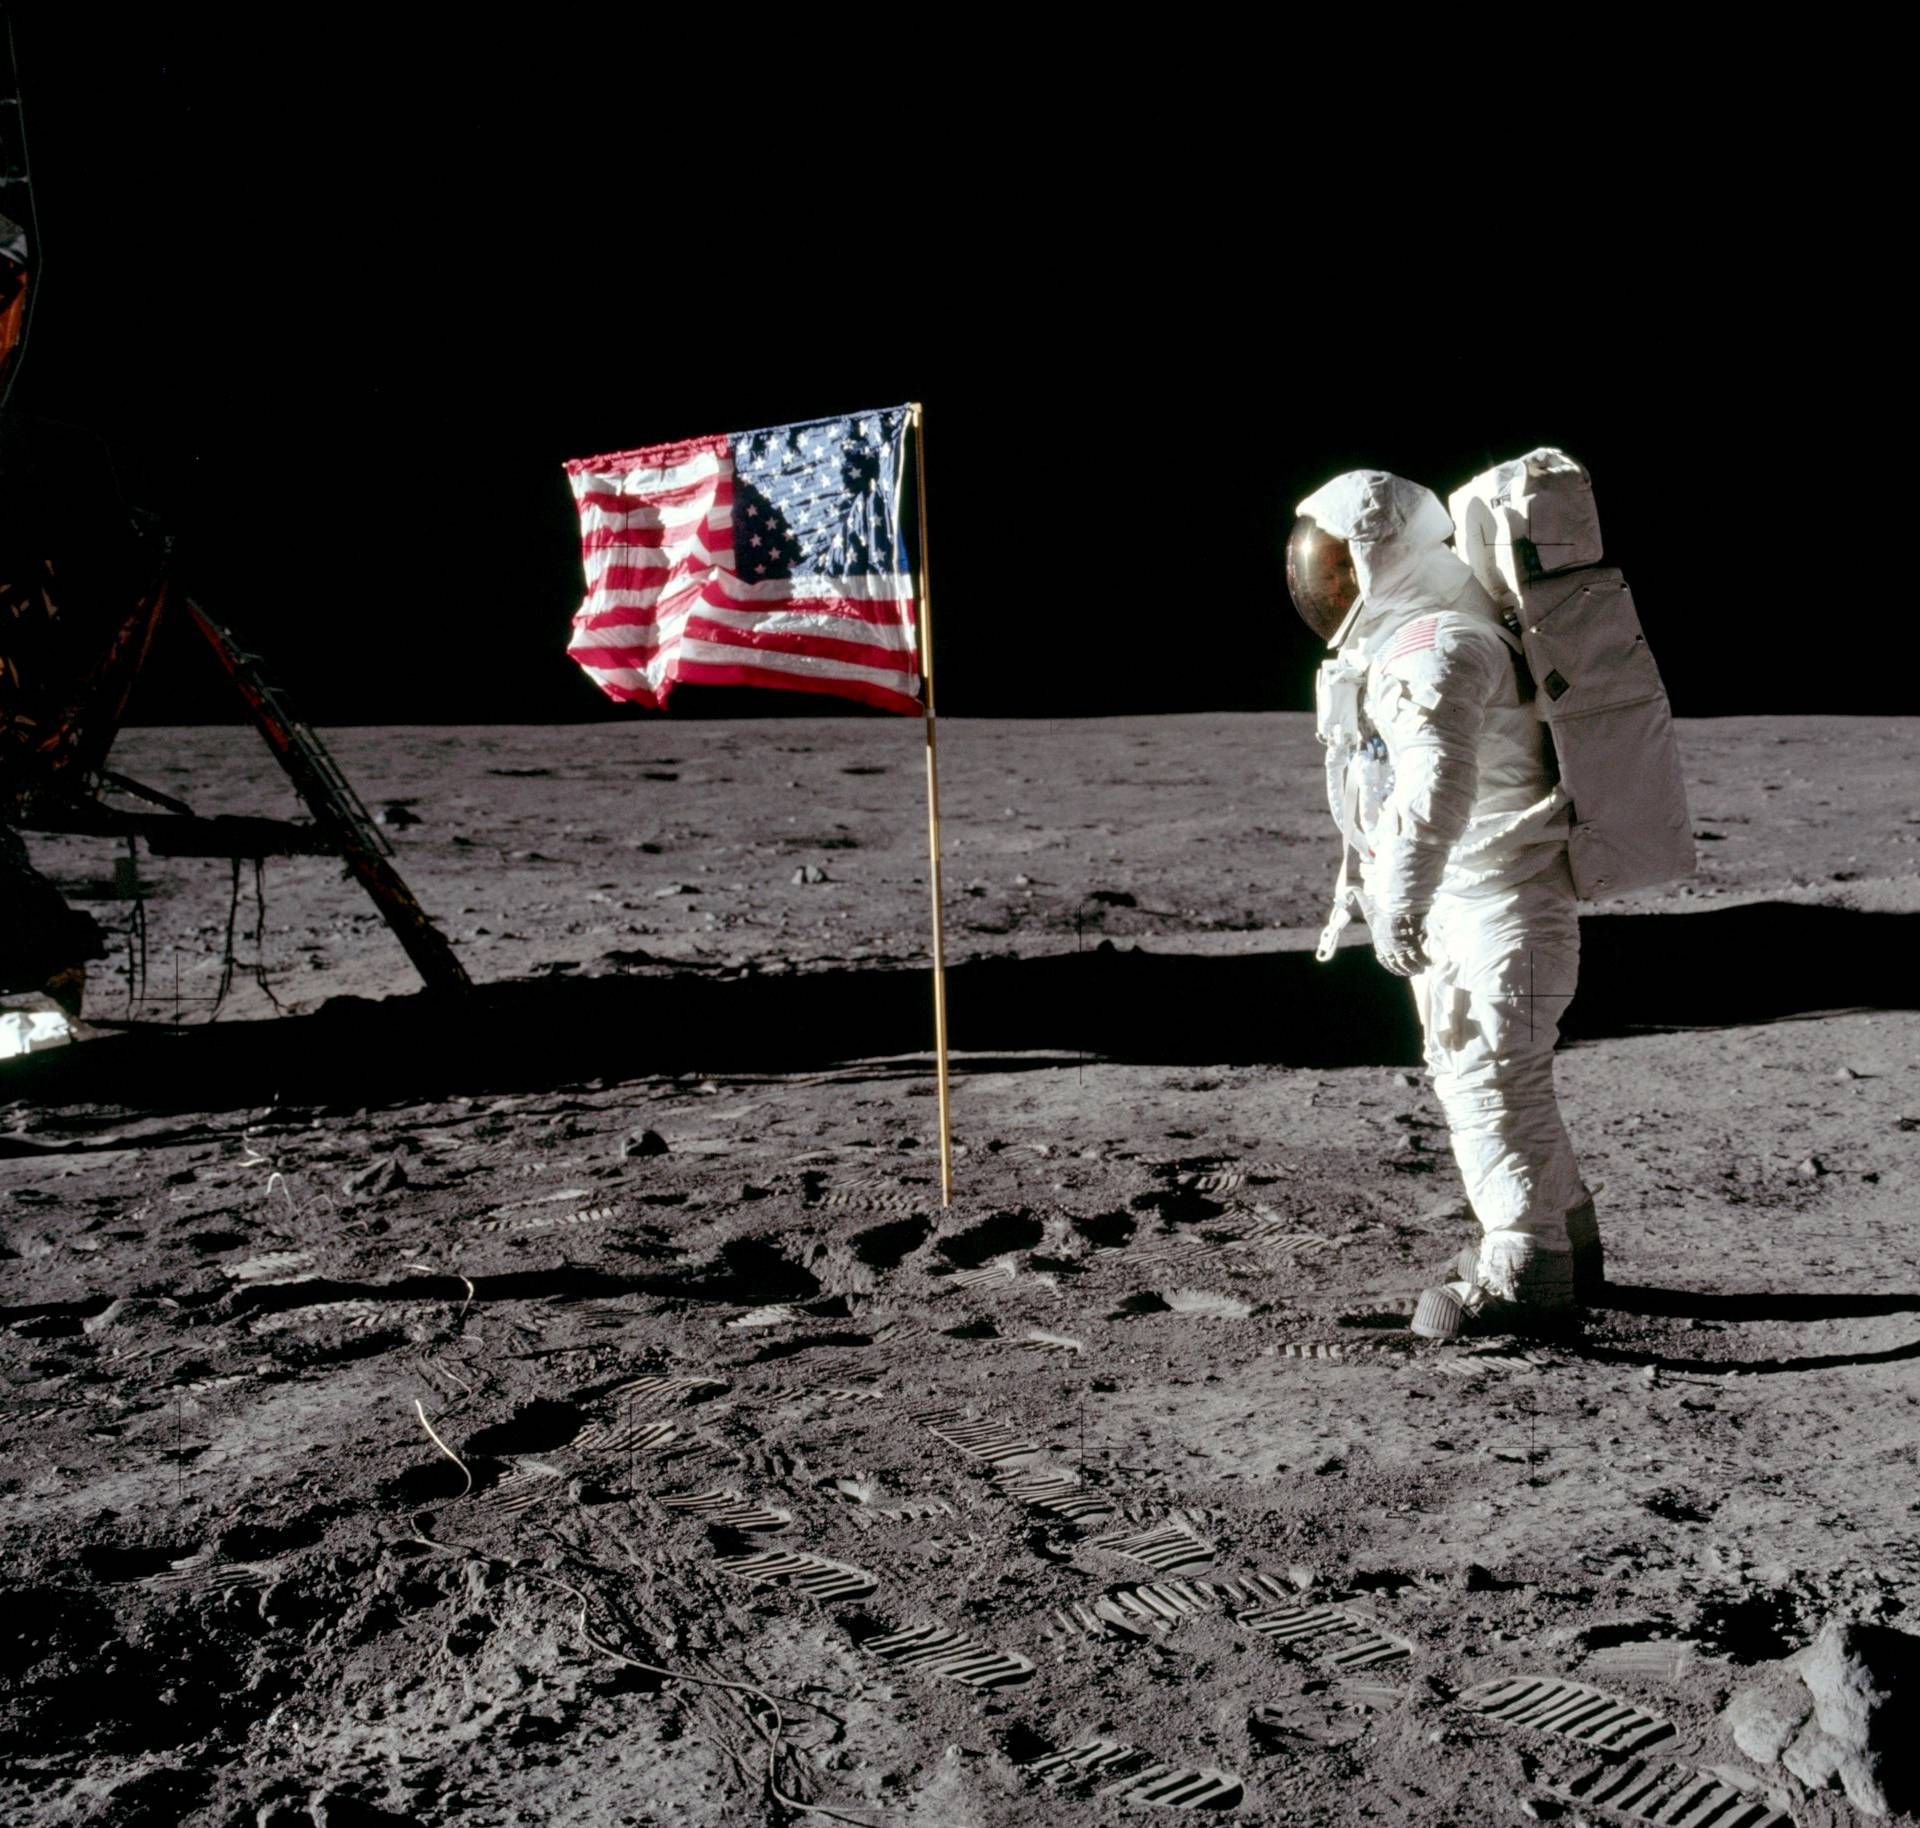 FILE PHOTO: Buzz Aldrin poses for a photograph beside the deployed United States flag on the moon